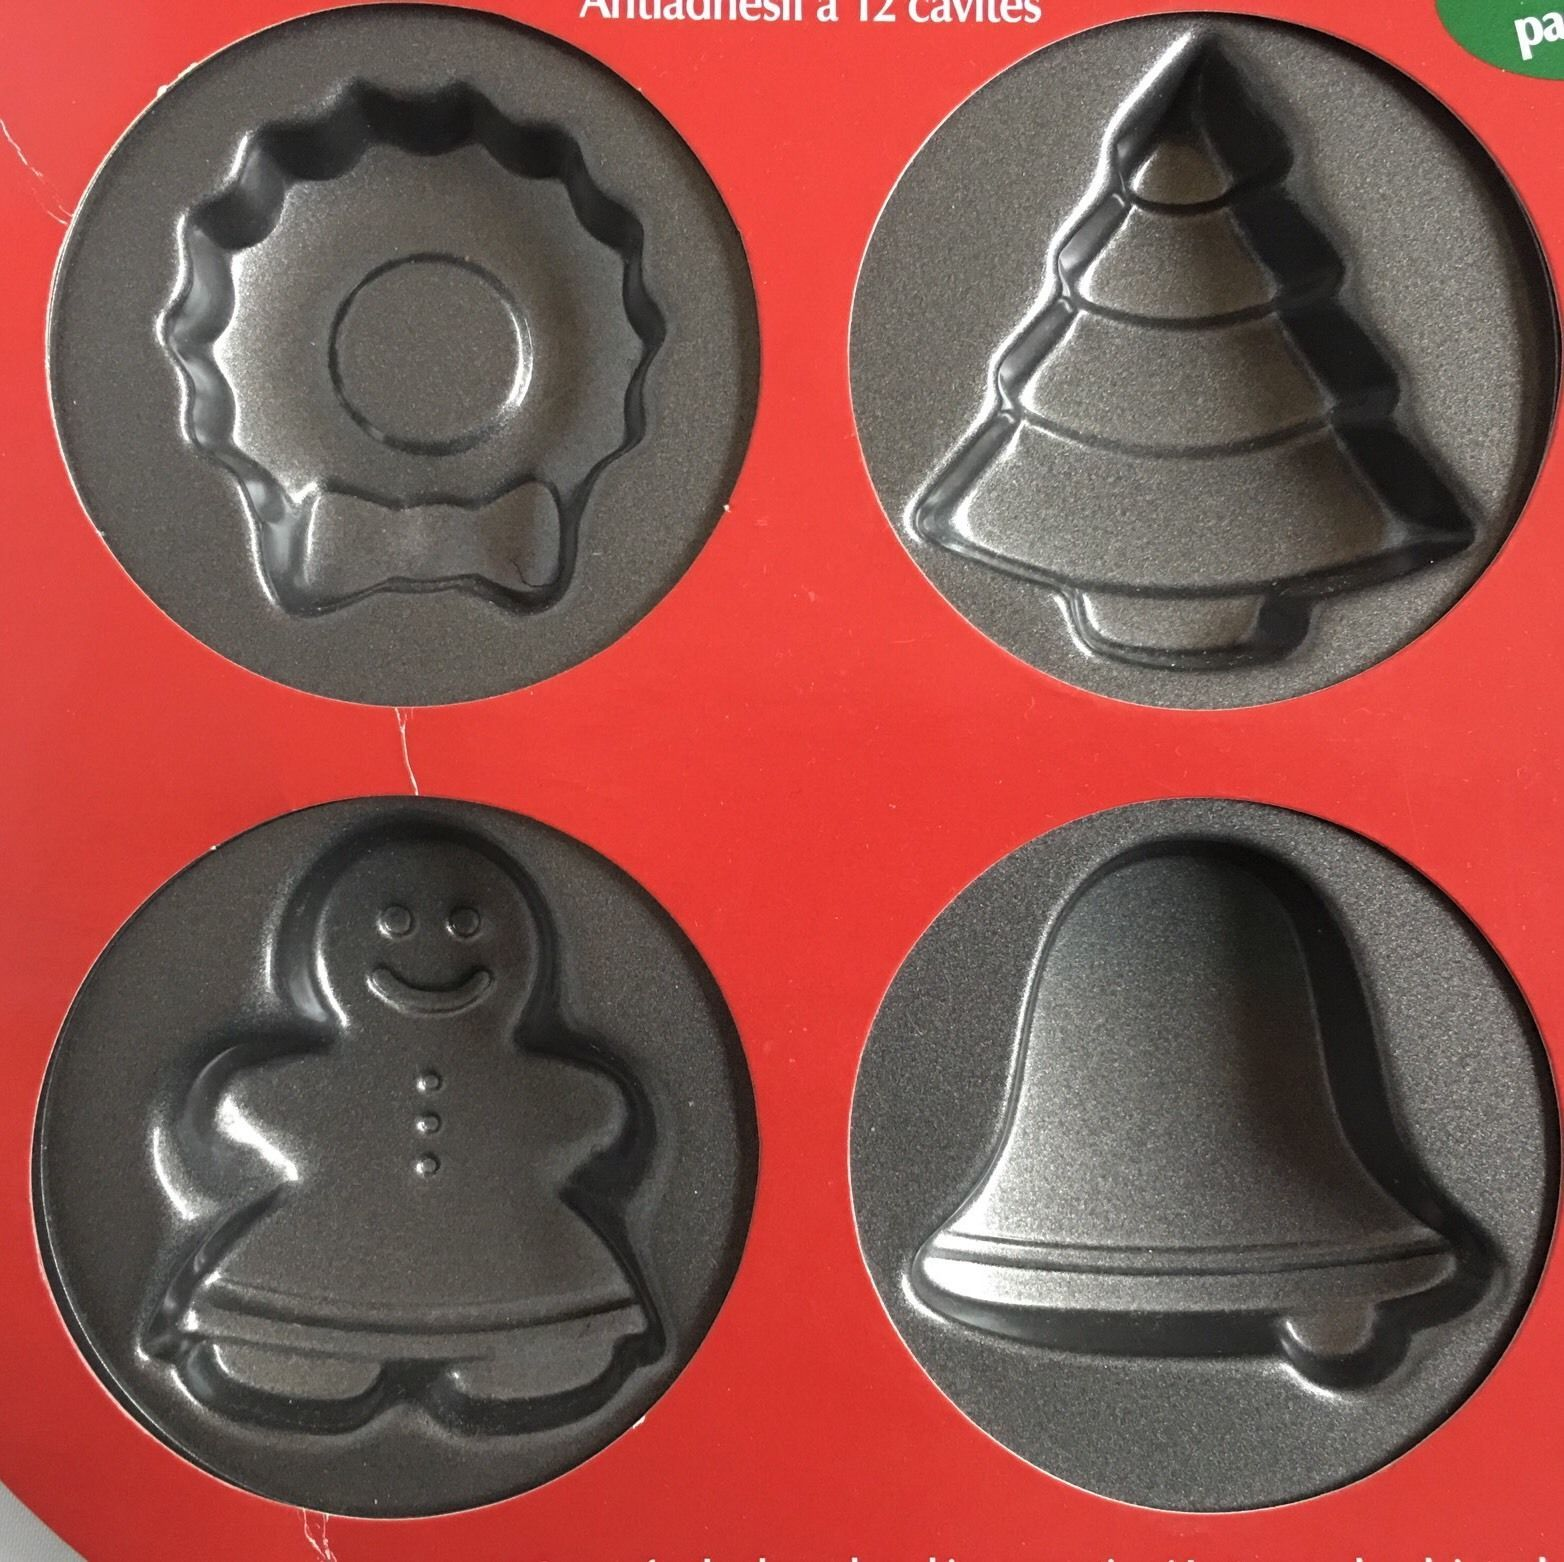 Wilton 12 cavity christmas cookie baking pan non stick 12 different designs new